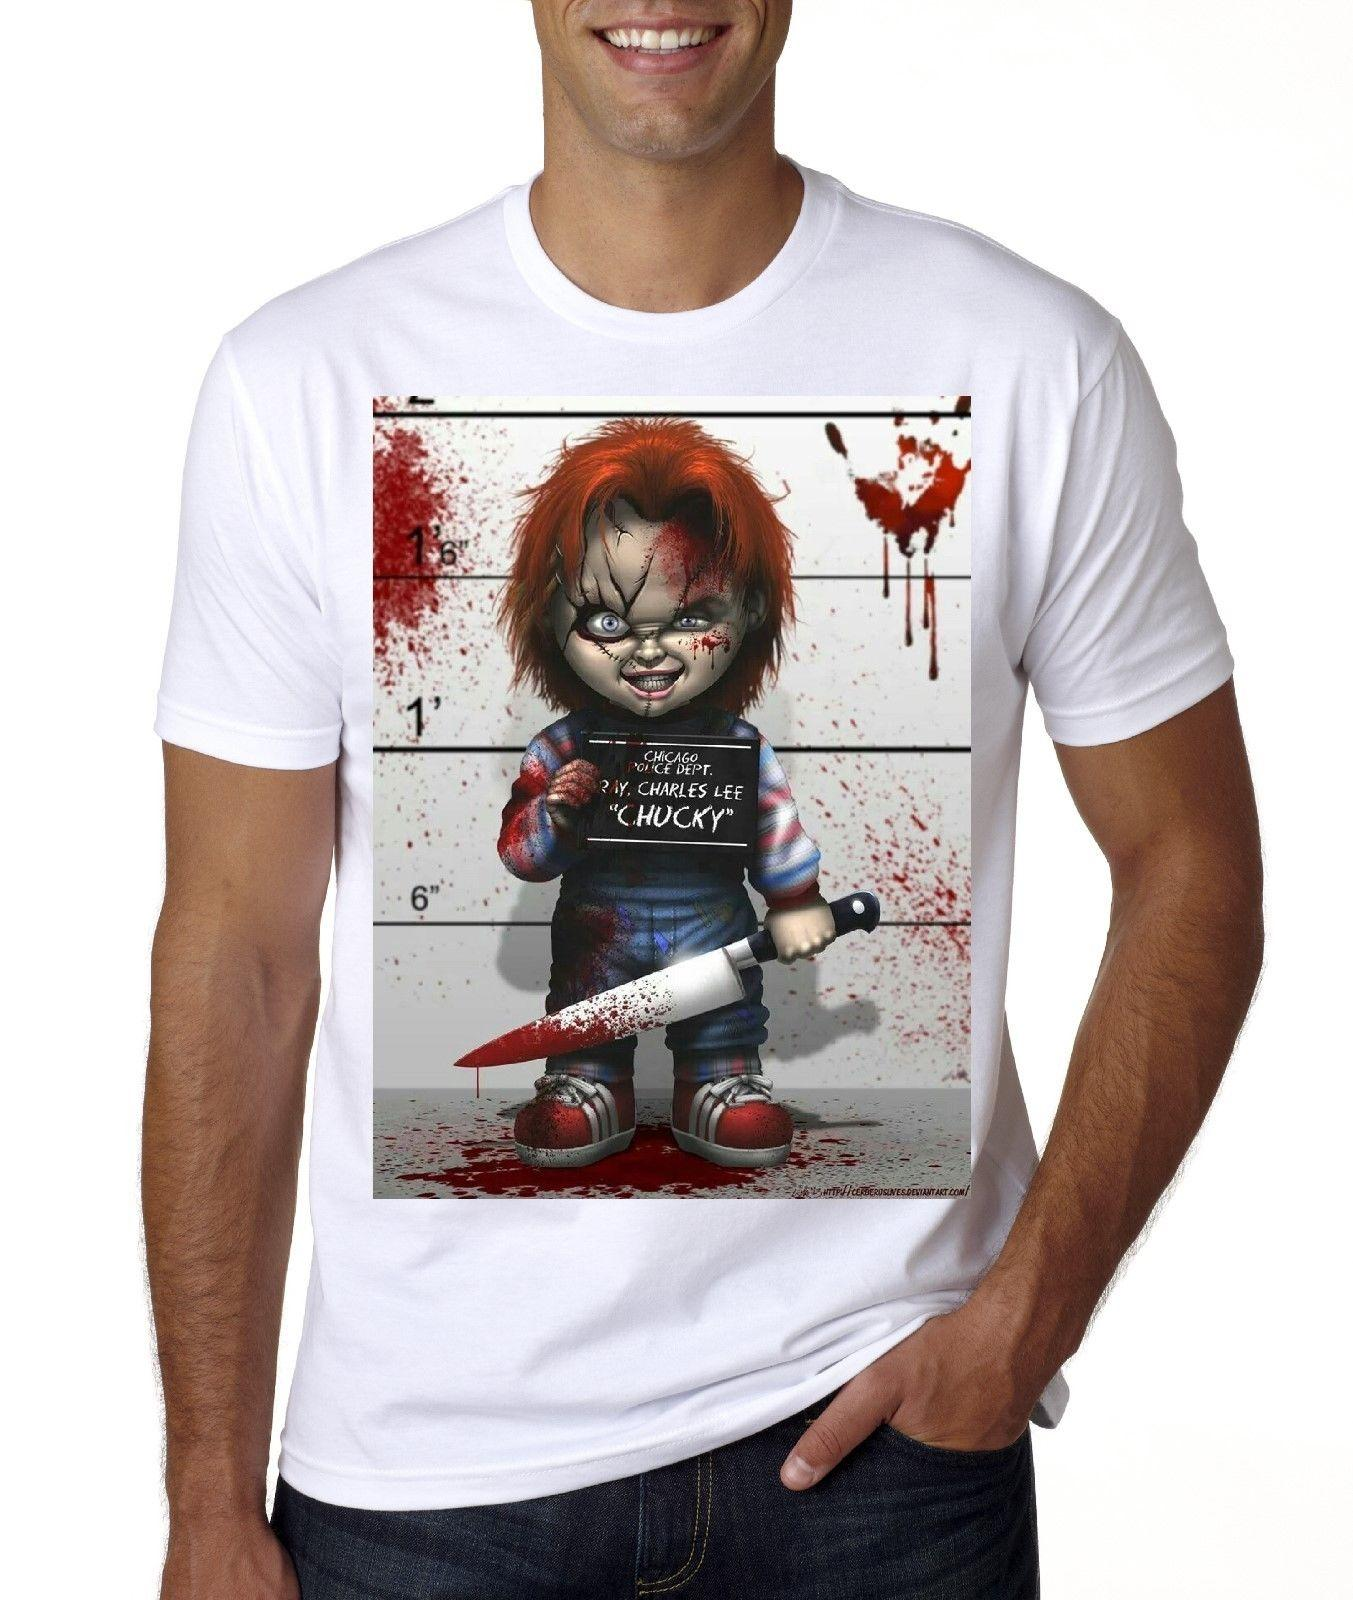 d0eb094a71e56 CHUCKY T-SHIRT SIZES FROM MED -3XL Cartoon t shirt men Unisex New Fashion  tshirt free shipping funny